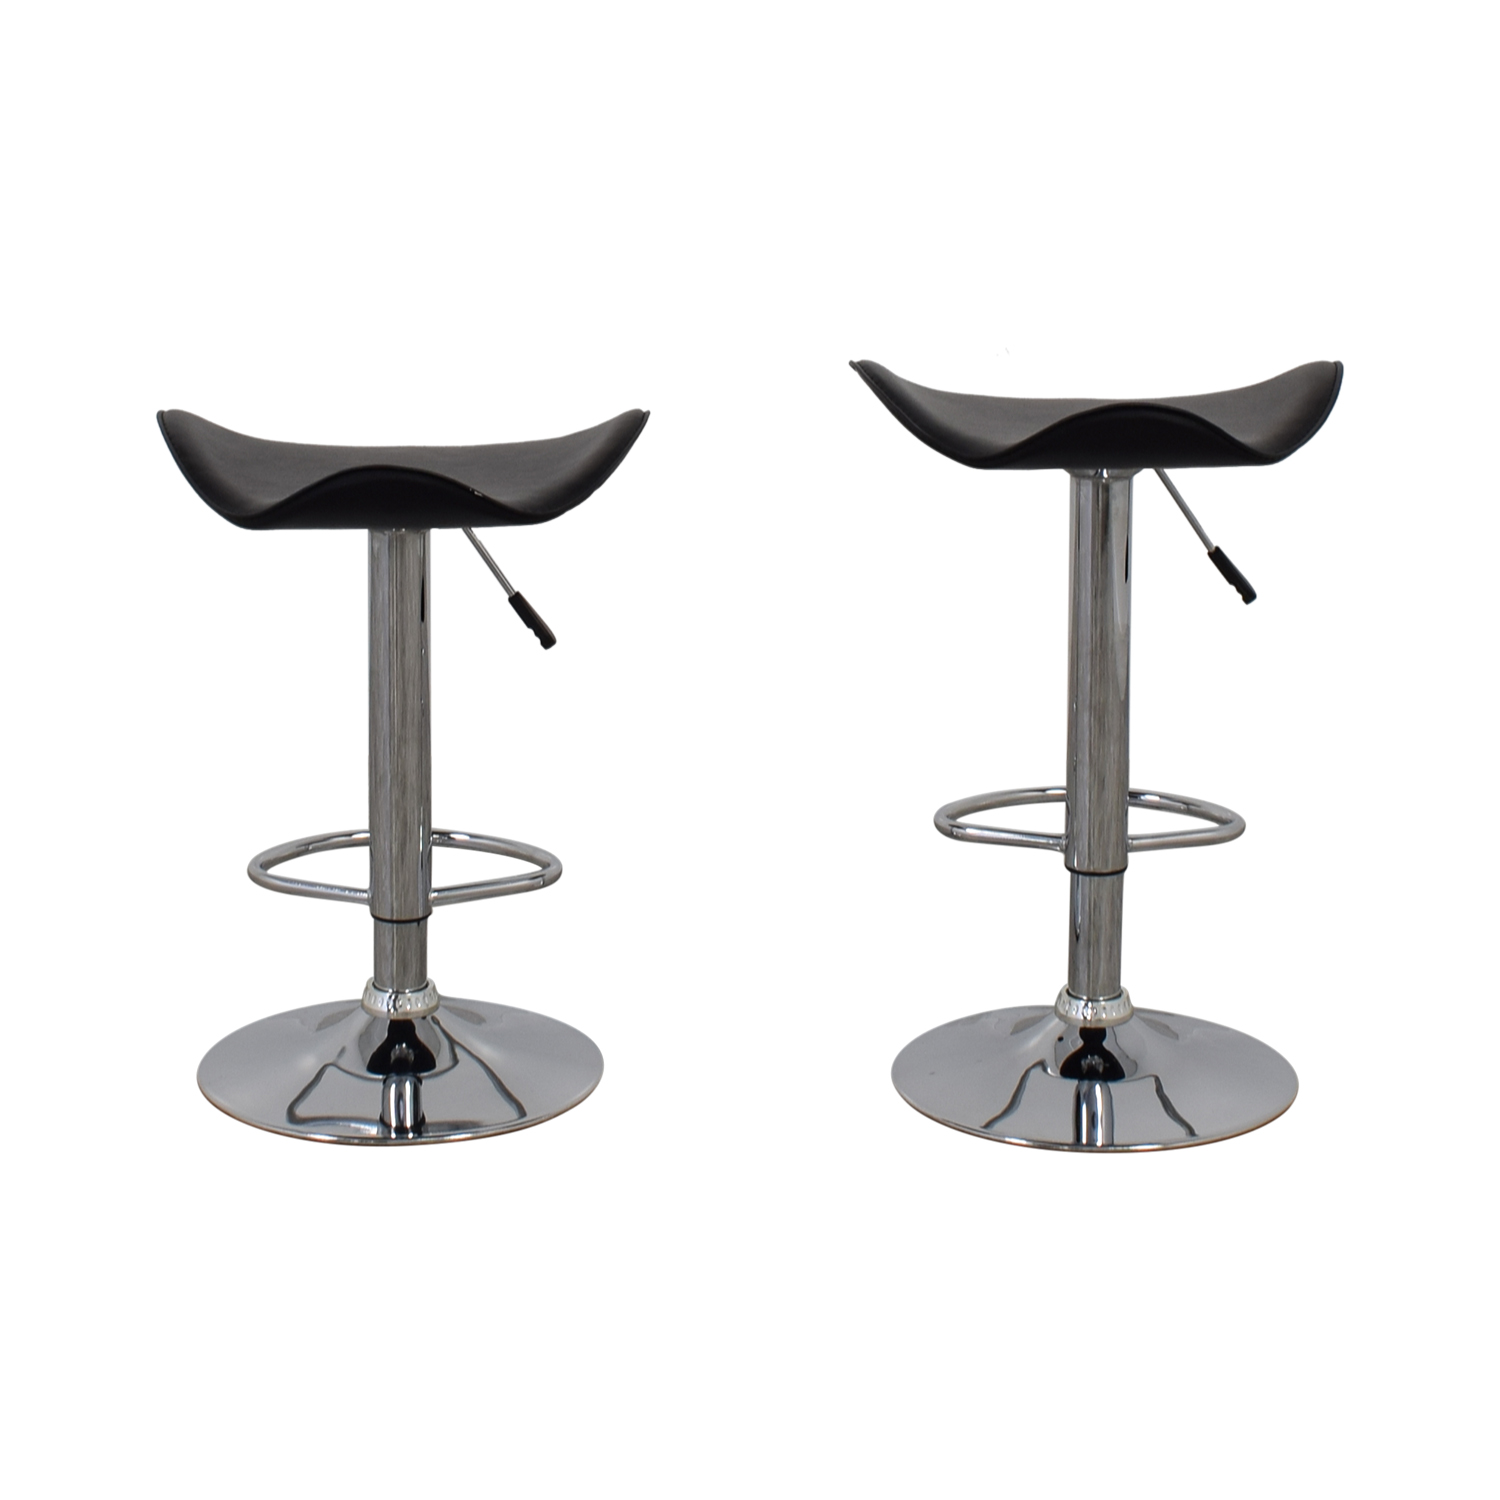 Black Leather and Chrome Adjustable Bar Stools / Chairs